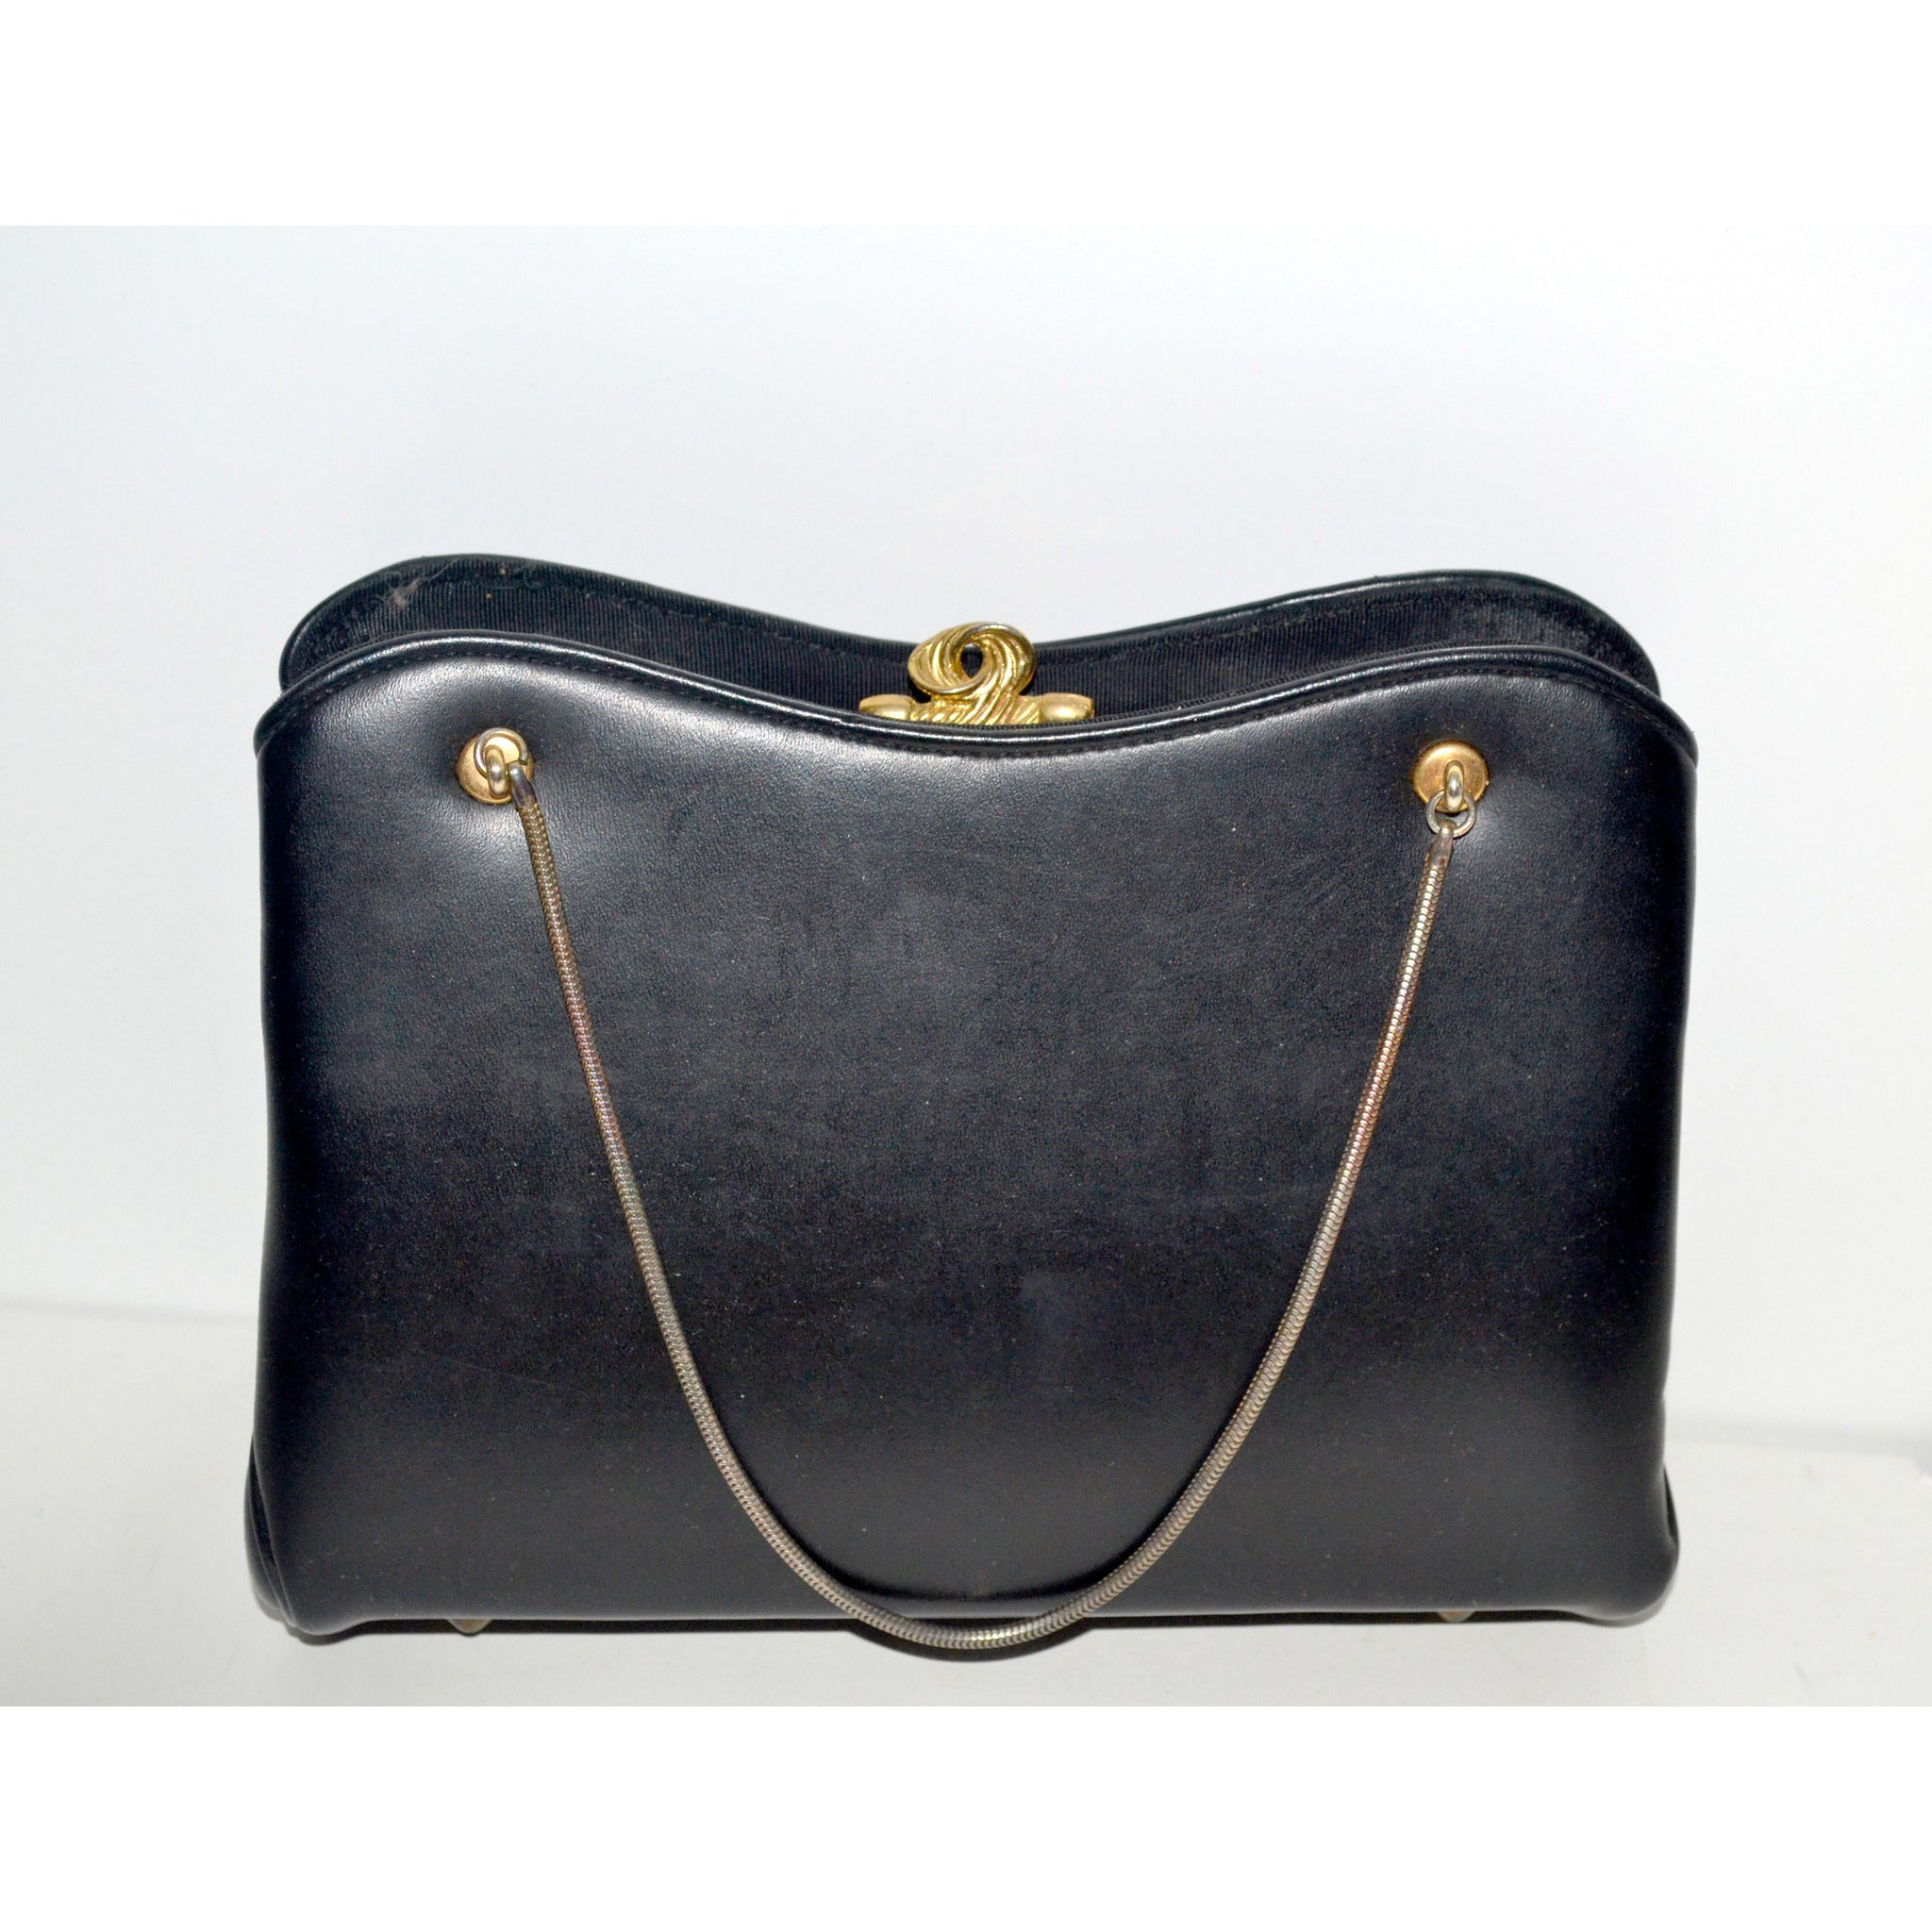 Vintage Black Leather Purse By Garay